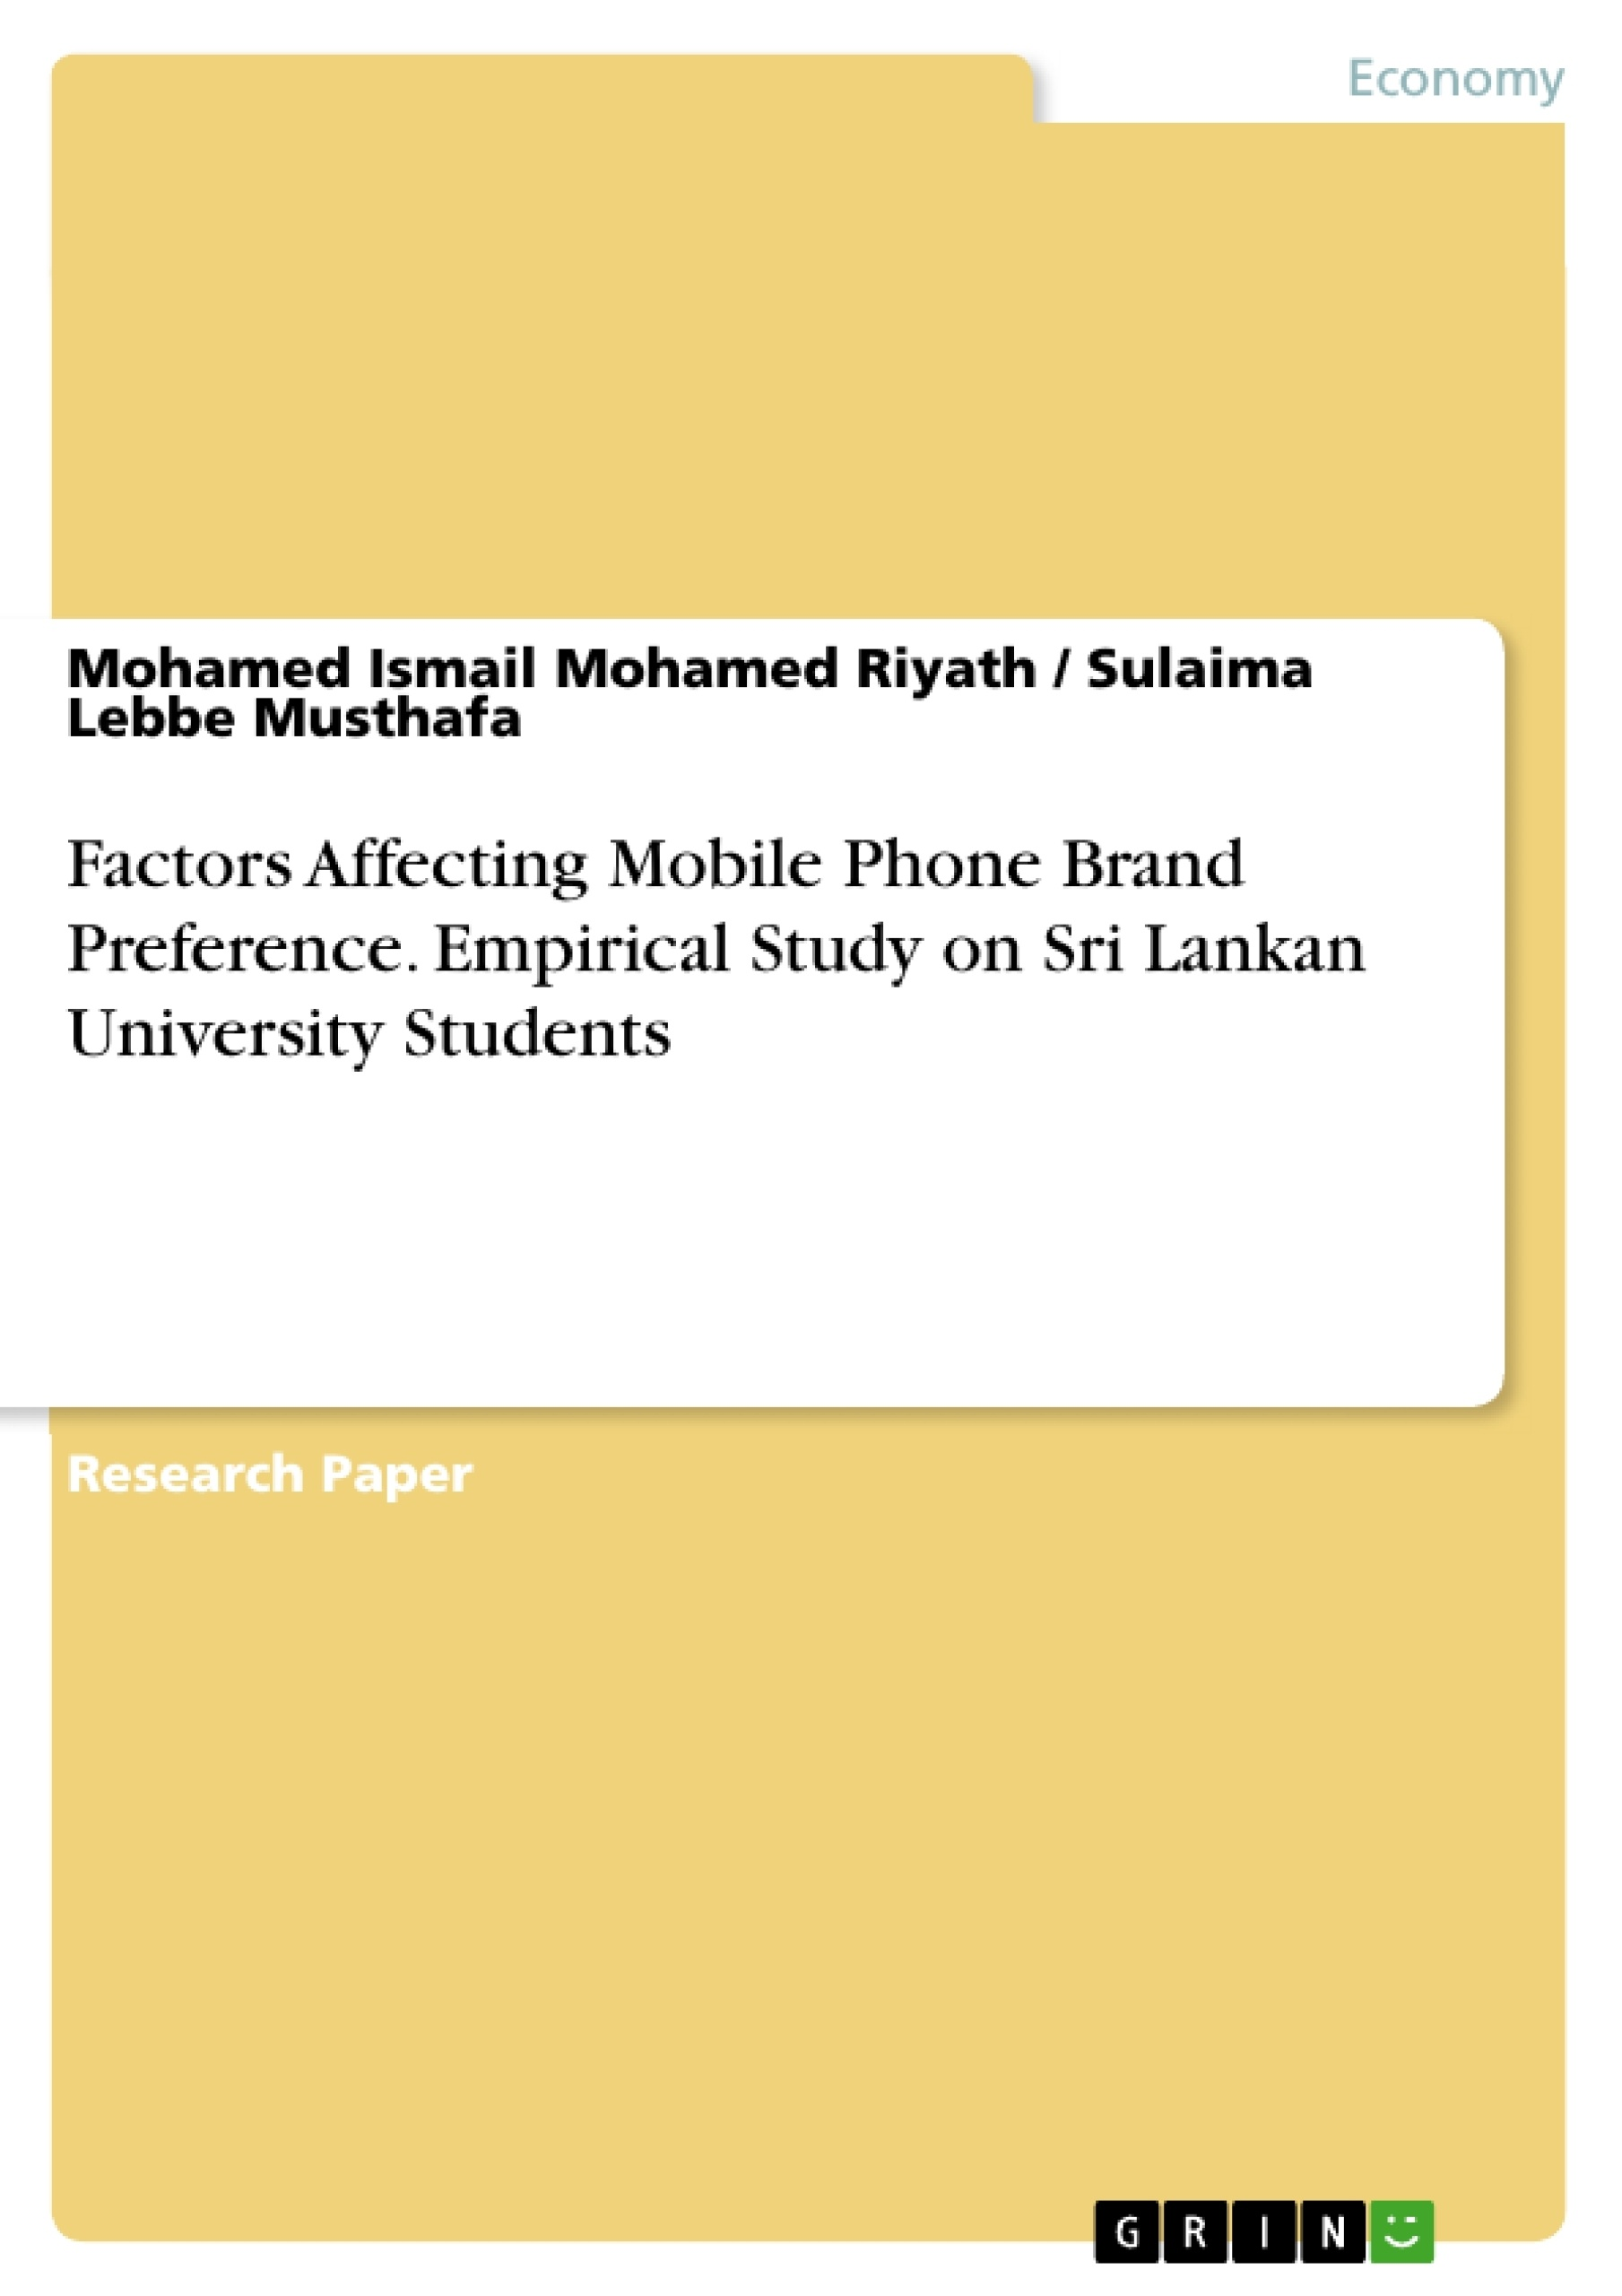 GRIN - Factors Affecting Mobile Phone Brand Preference  Empirical Study on  Sri Lankan University Students